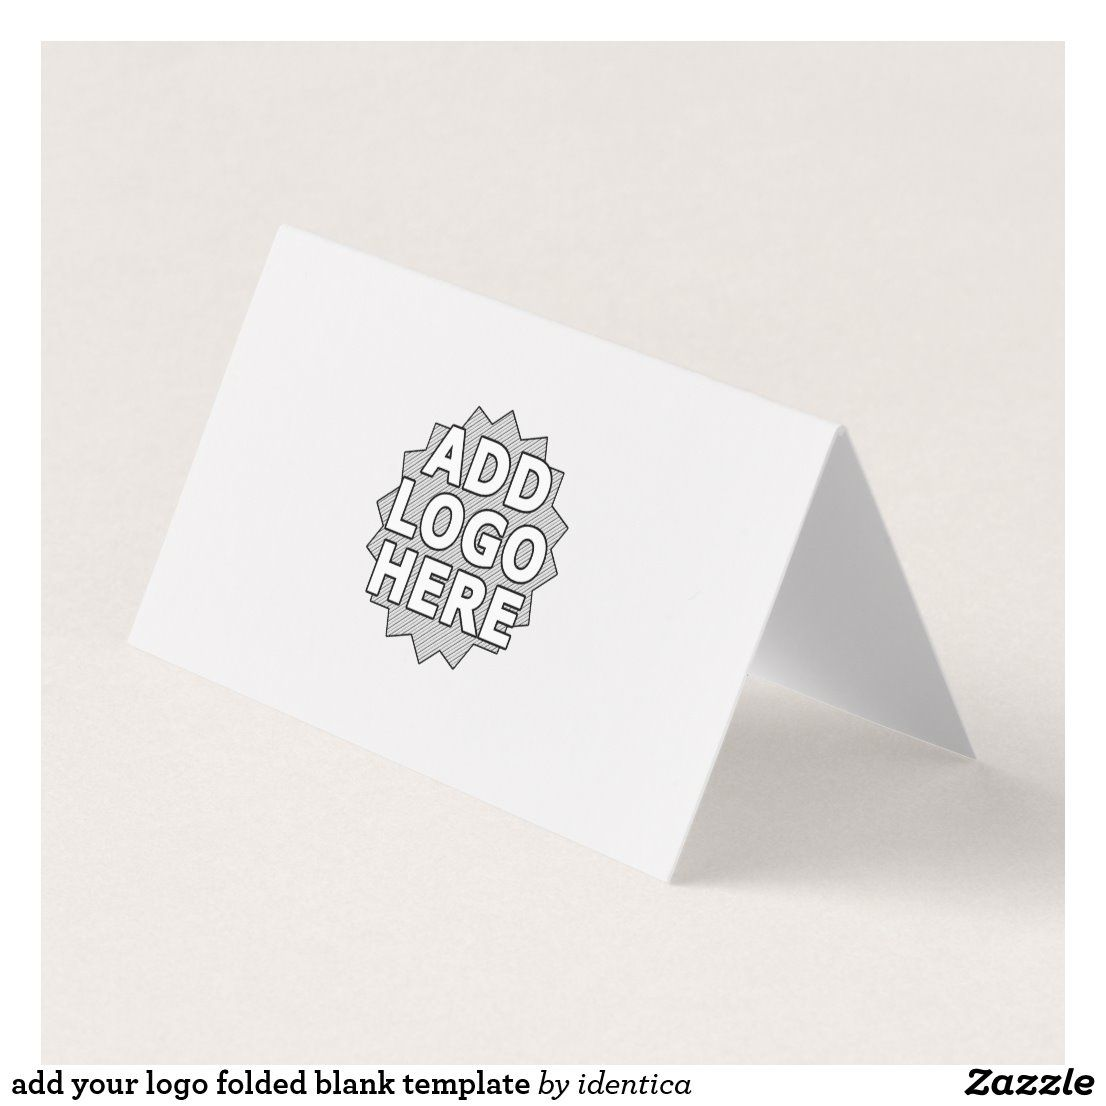 Add Your Logo Folded Blank Template Business Card Folded Business Cards Discount Card Business Card Design